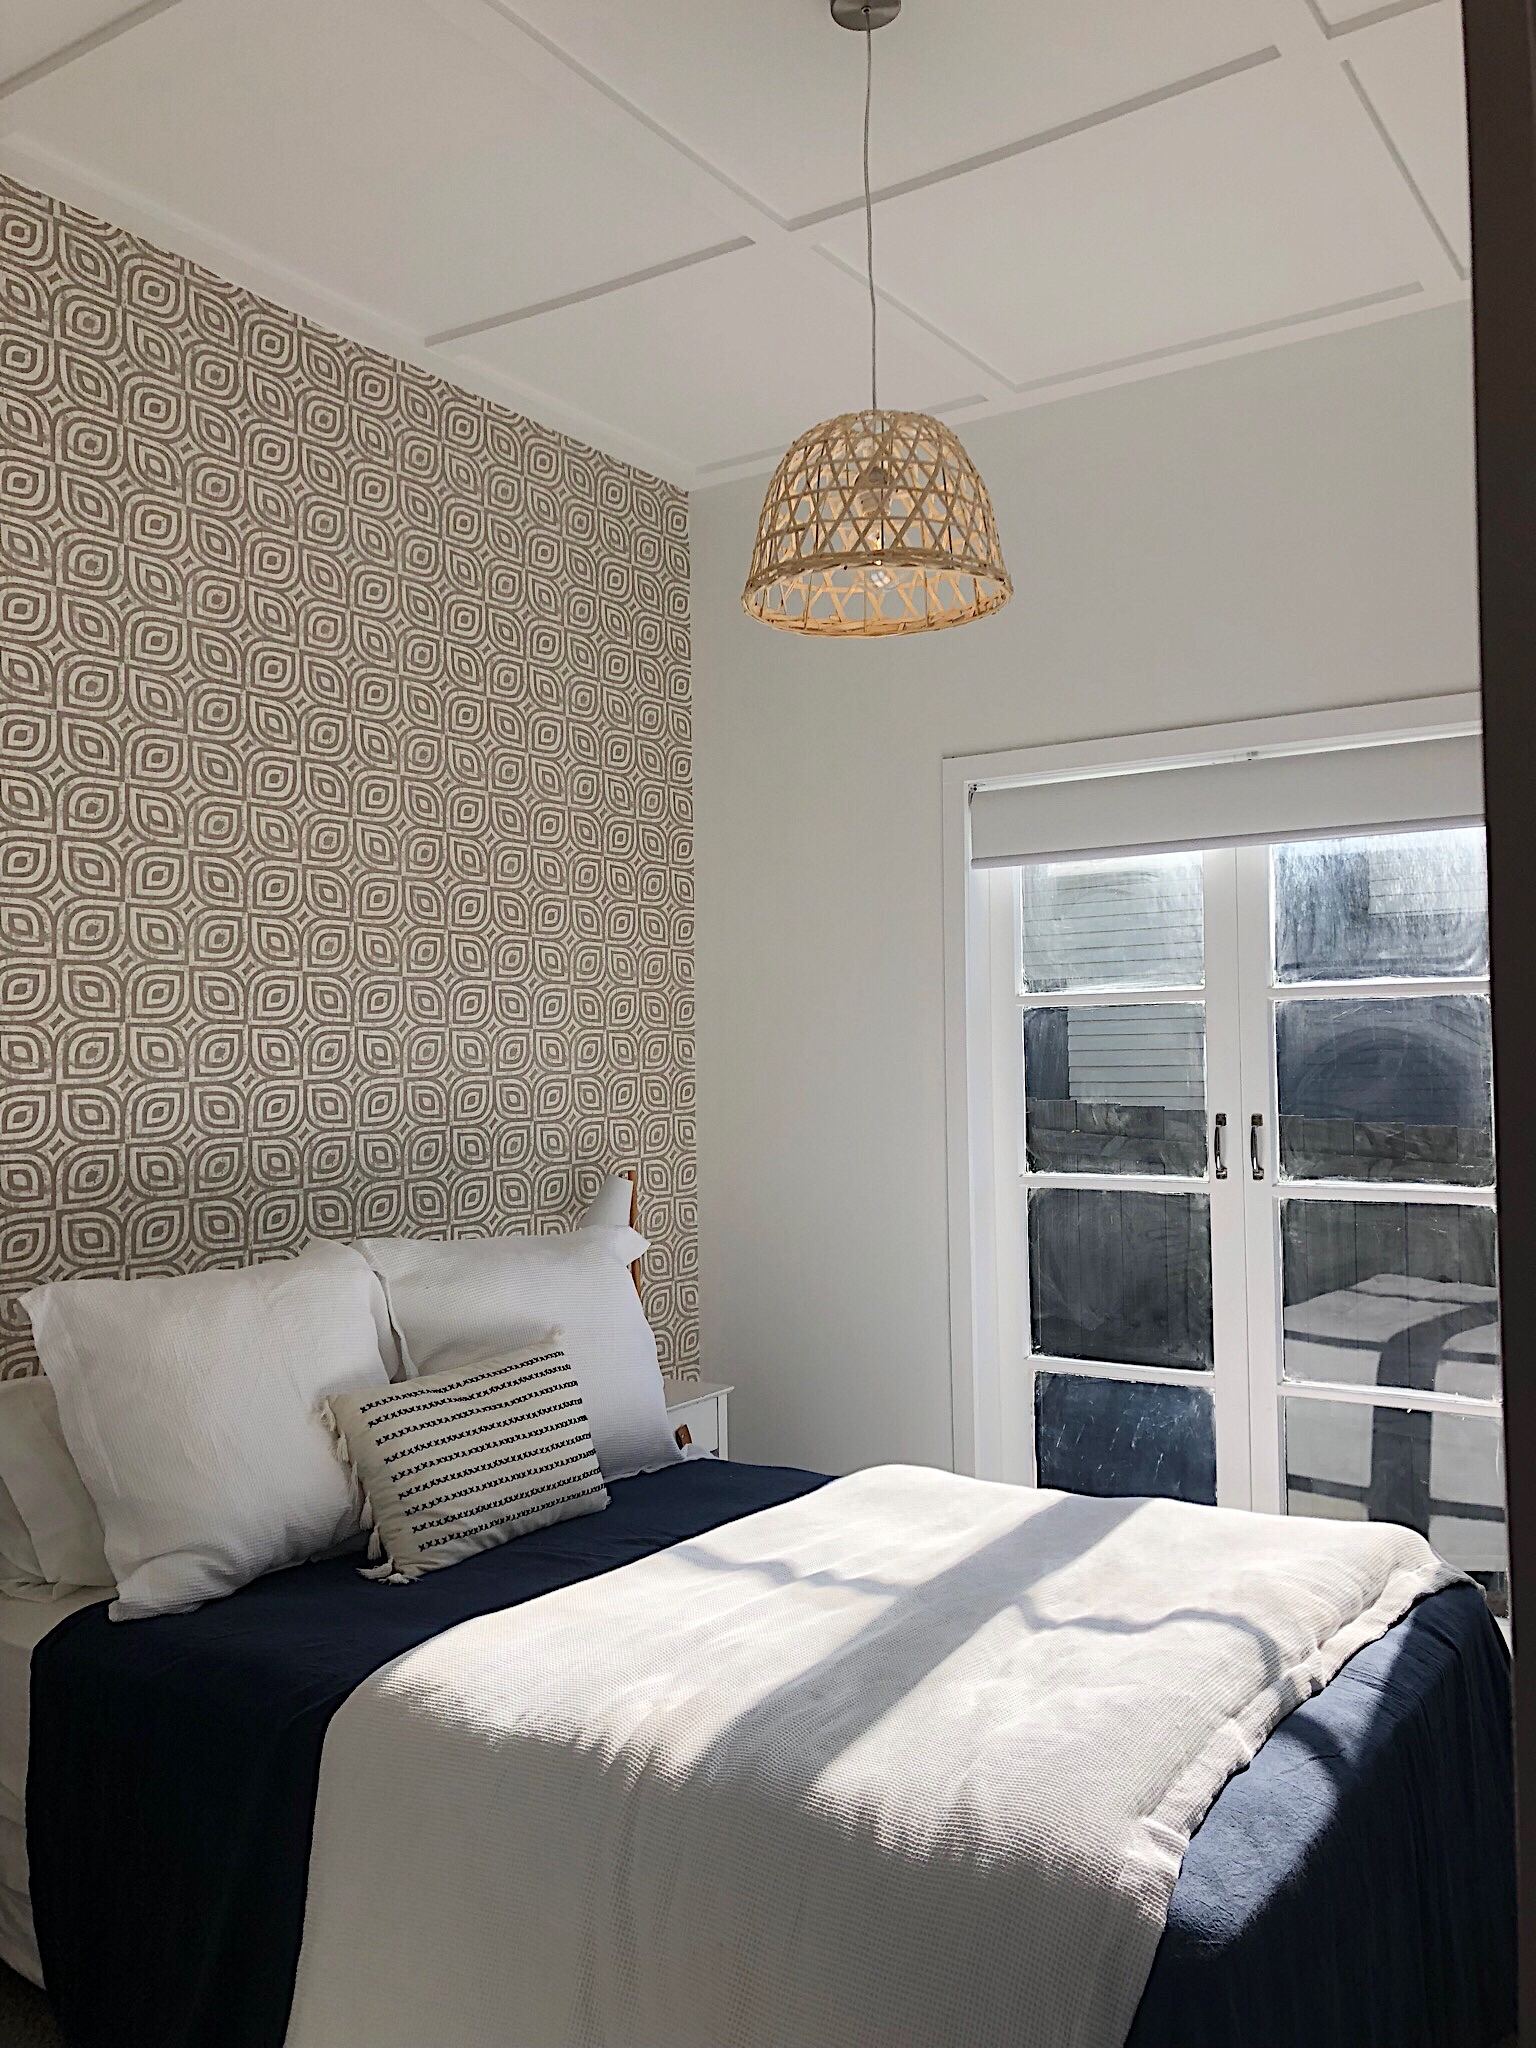 Pearson + Projects The Expert Reveal Bedroom Renovation Budget Sunny Room.jpg